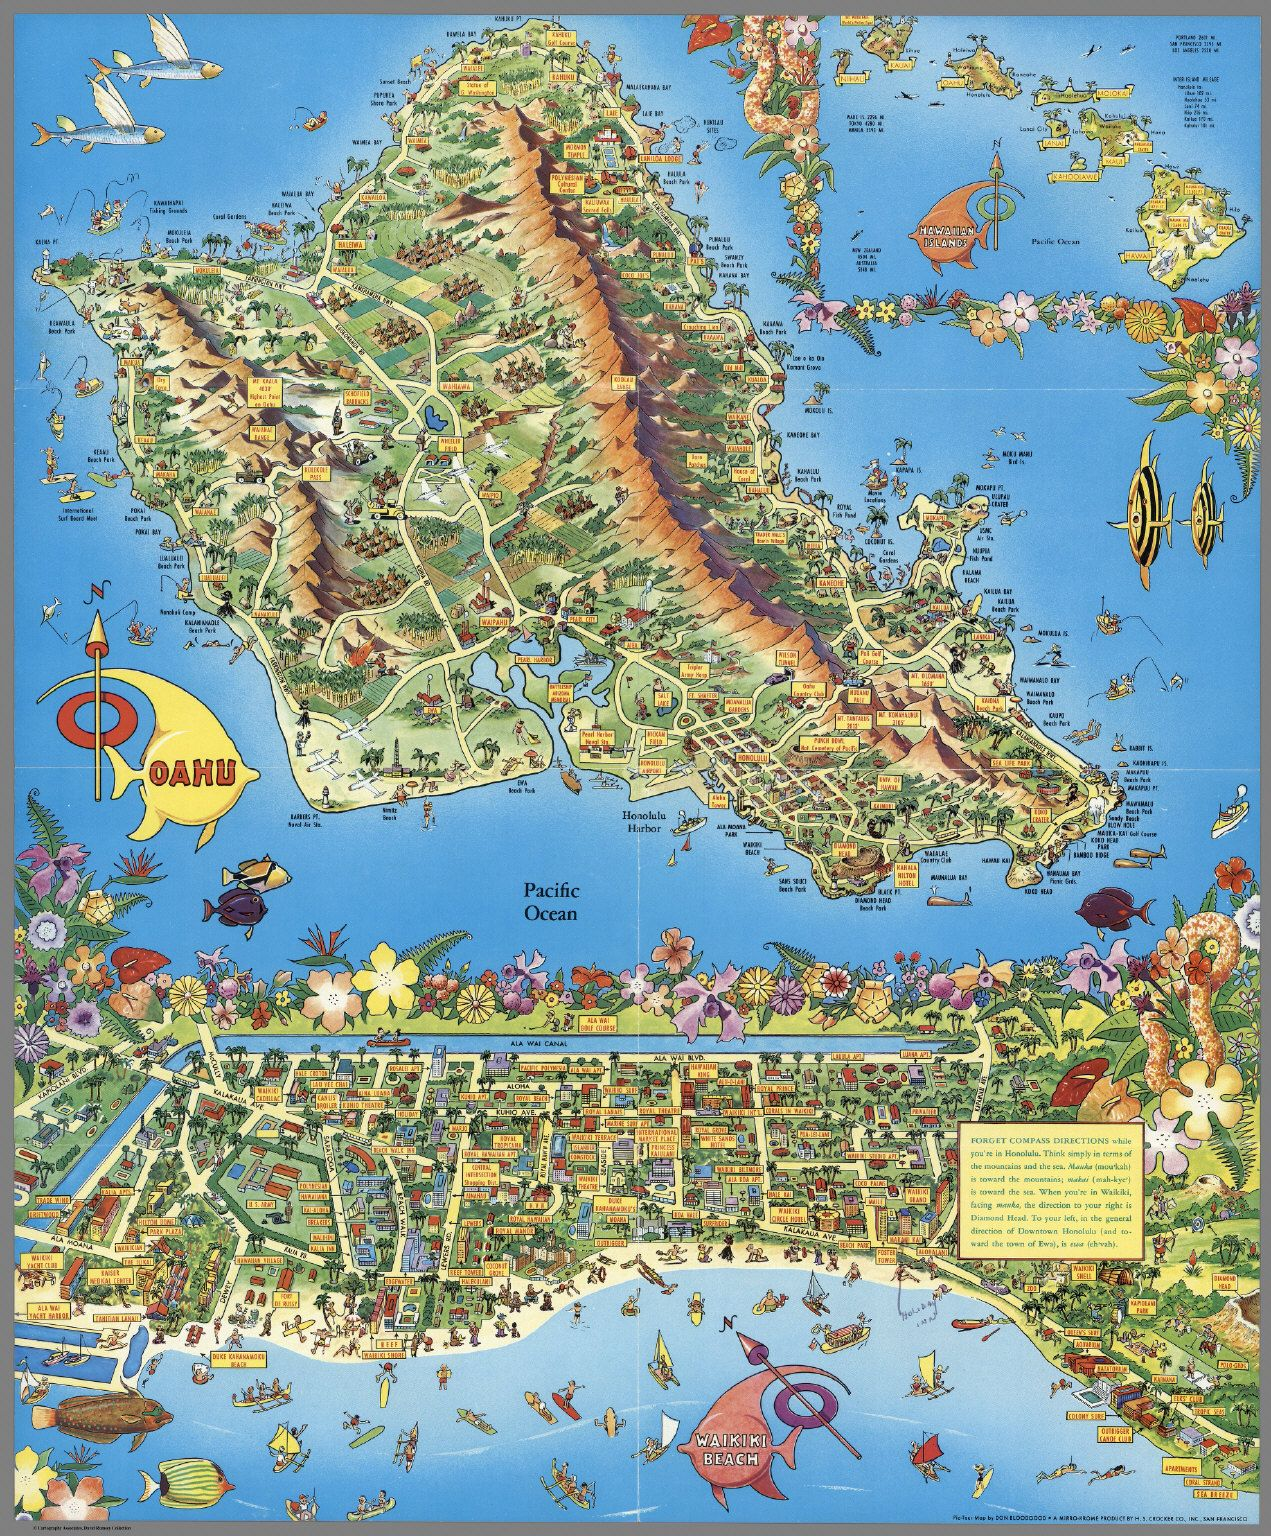 a pictour map honolulu waikiki and 'round the isle of oahu. a pictour map honolulu waikiki and 'round the isle of oahu